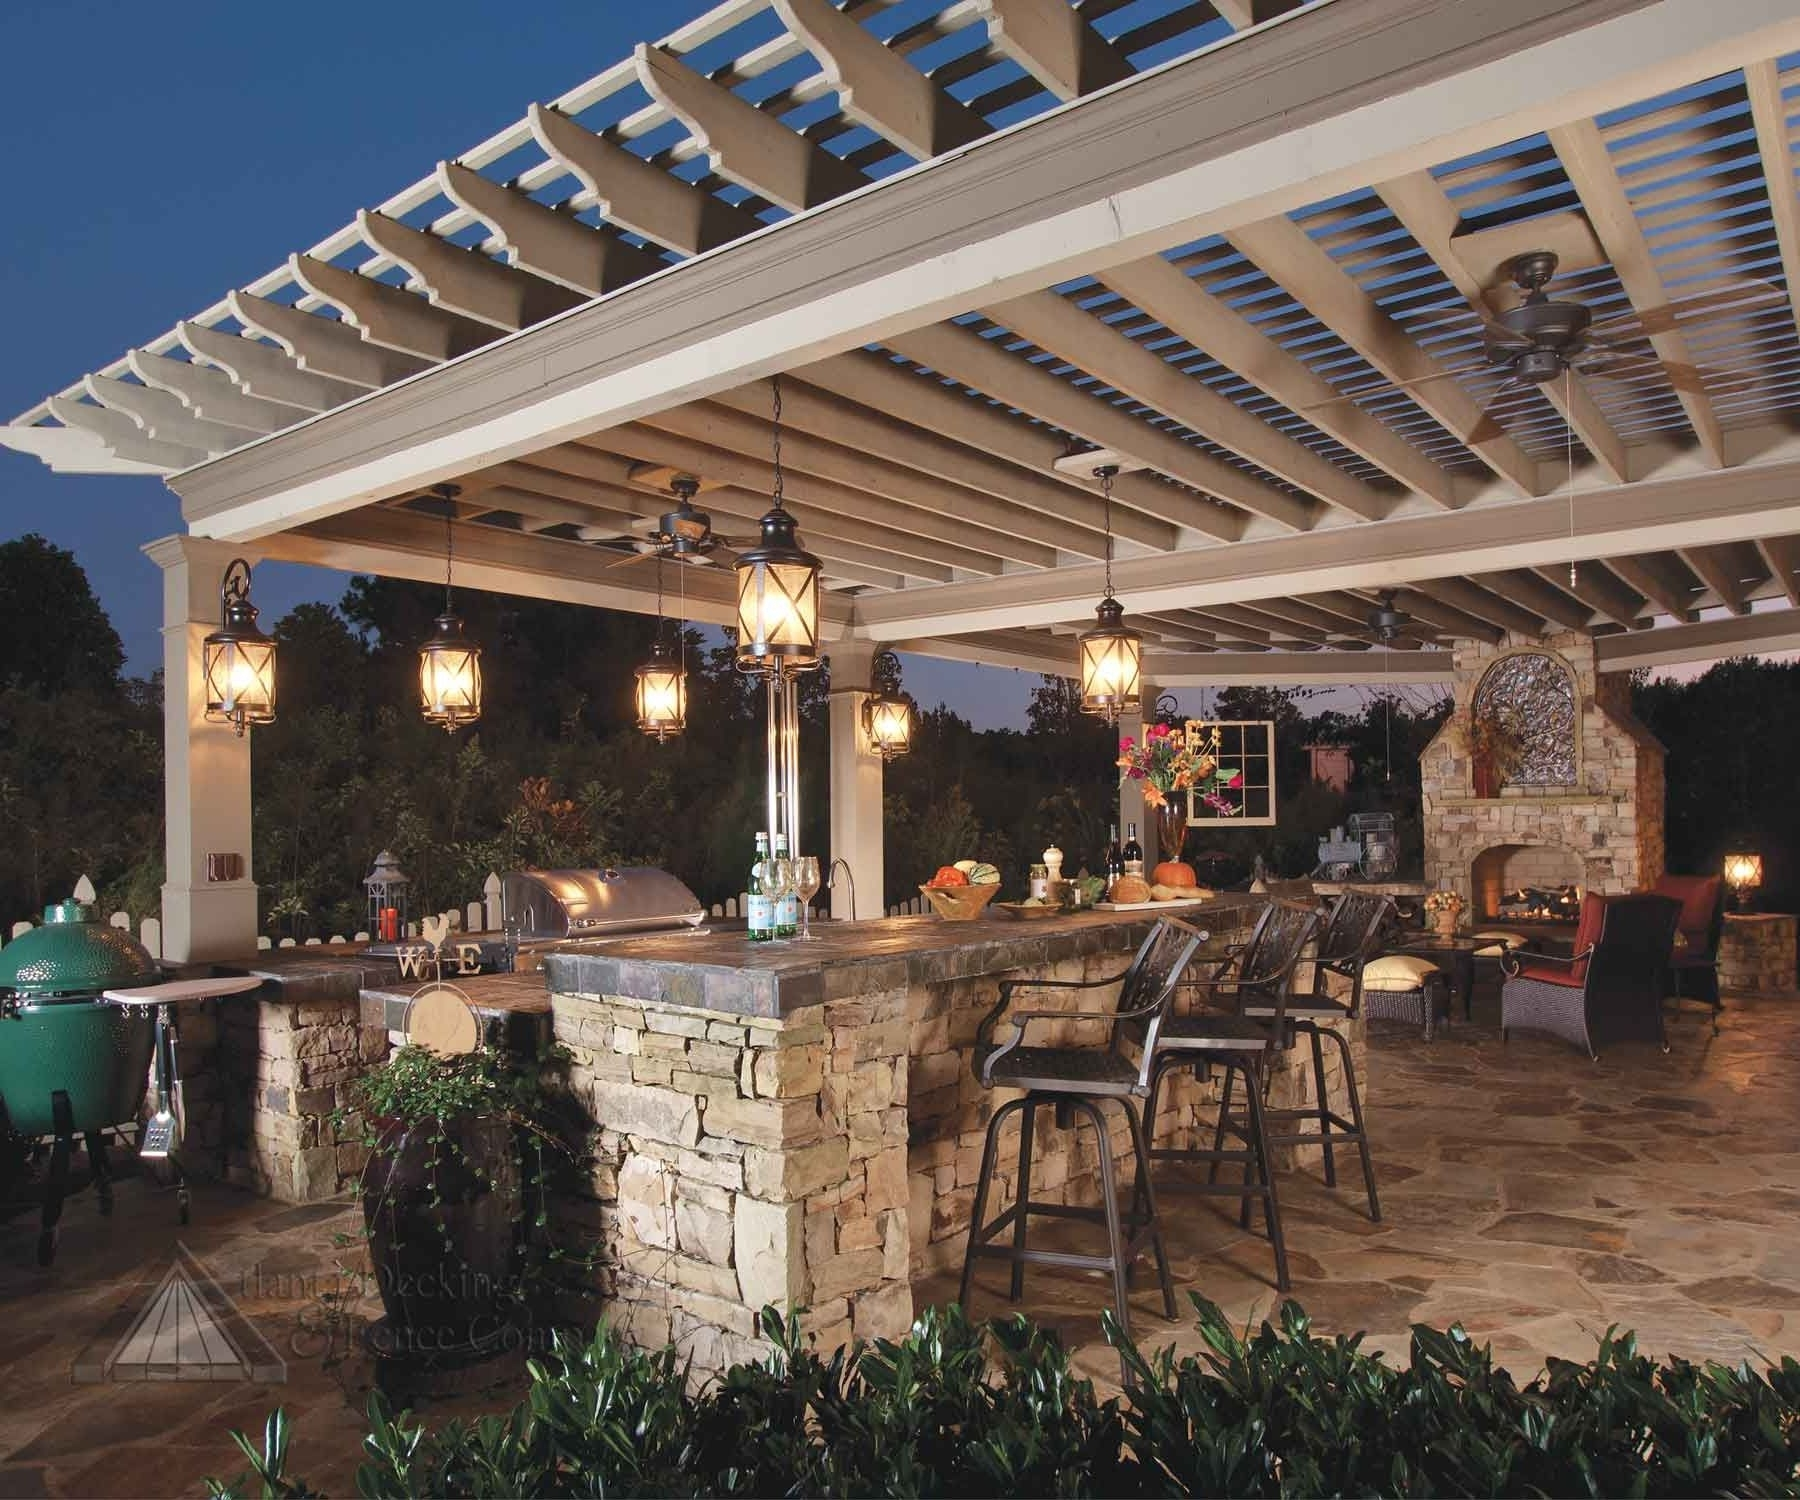 Contemporary Rustic Outdoor Lighting At Wayfair Regarding Recent Gorgeous Outdoor Kitchen Lighting Fixtures On House Design Ideas (View 4 of 20)